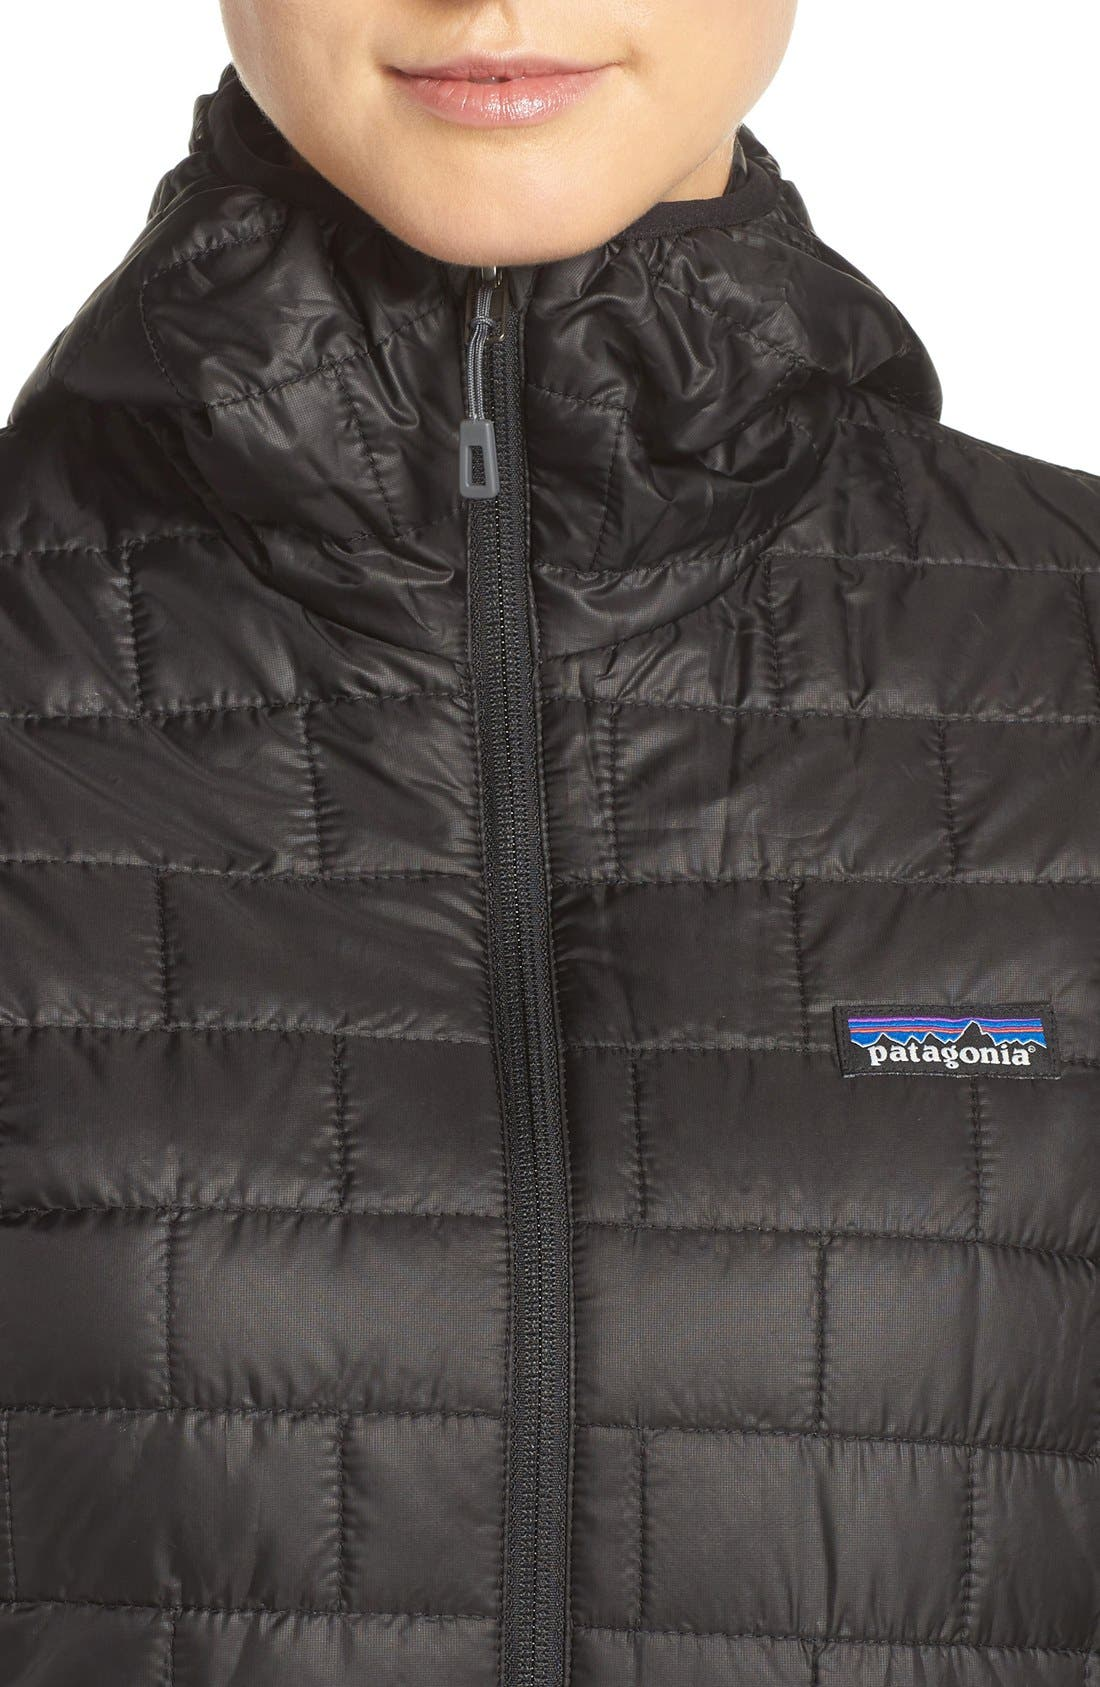 PATAGONIA, Nano Puff<sup>®</sup> Hooded Water Resistant Jacket, Alternate thumbnail 6, color, BLACK